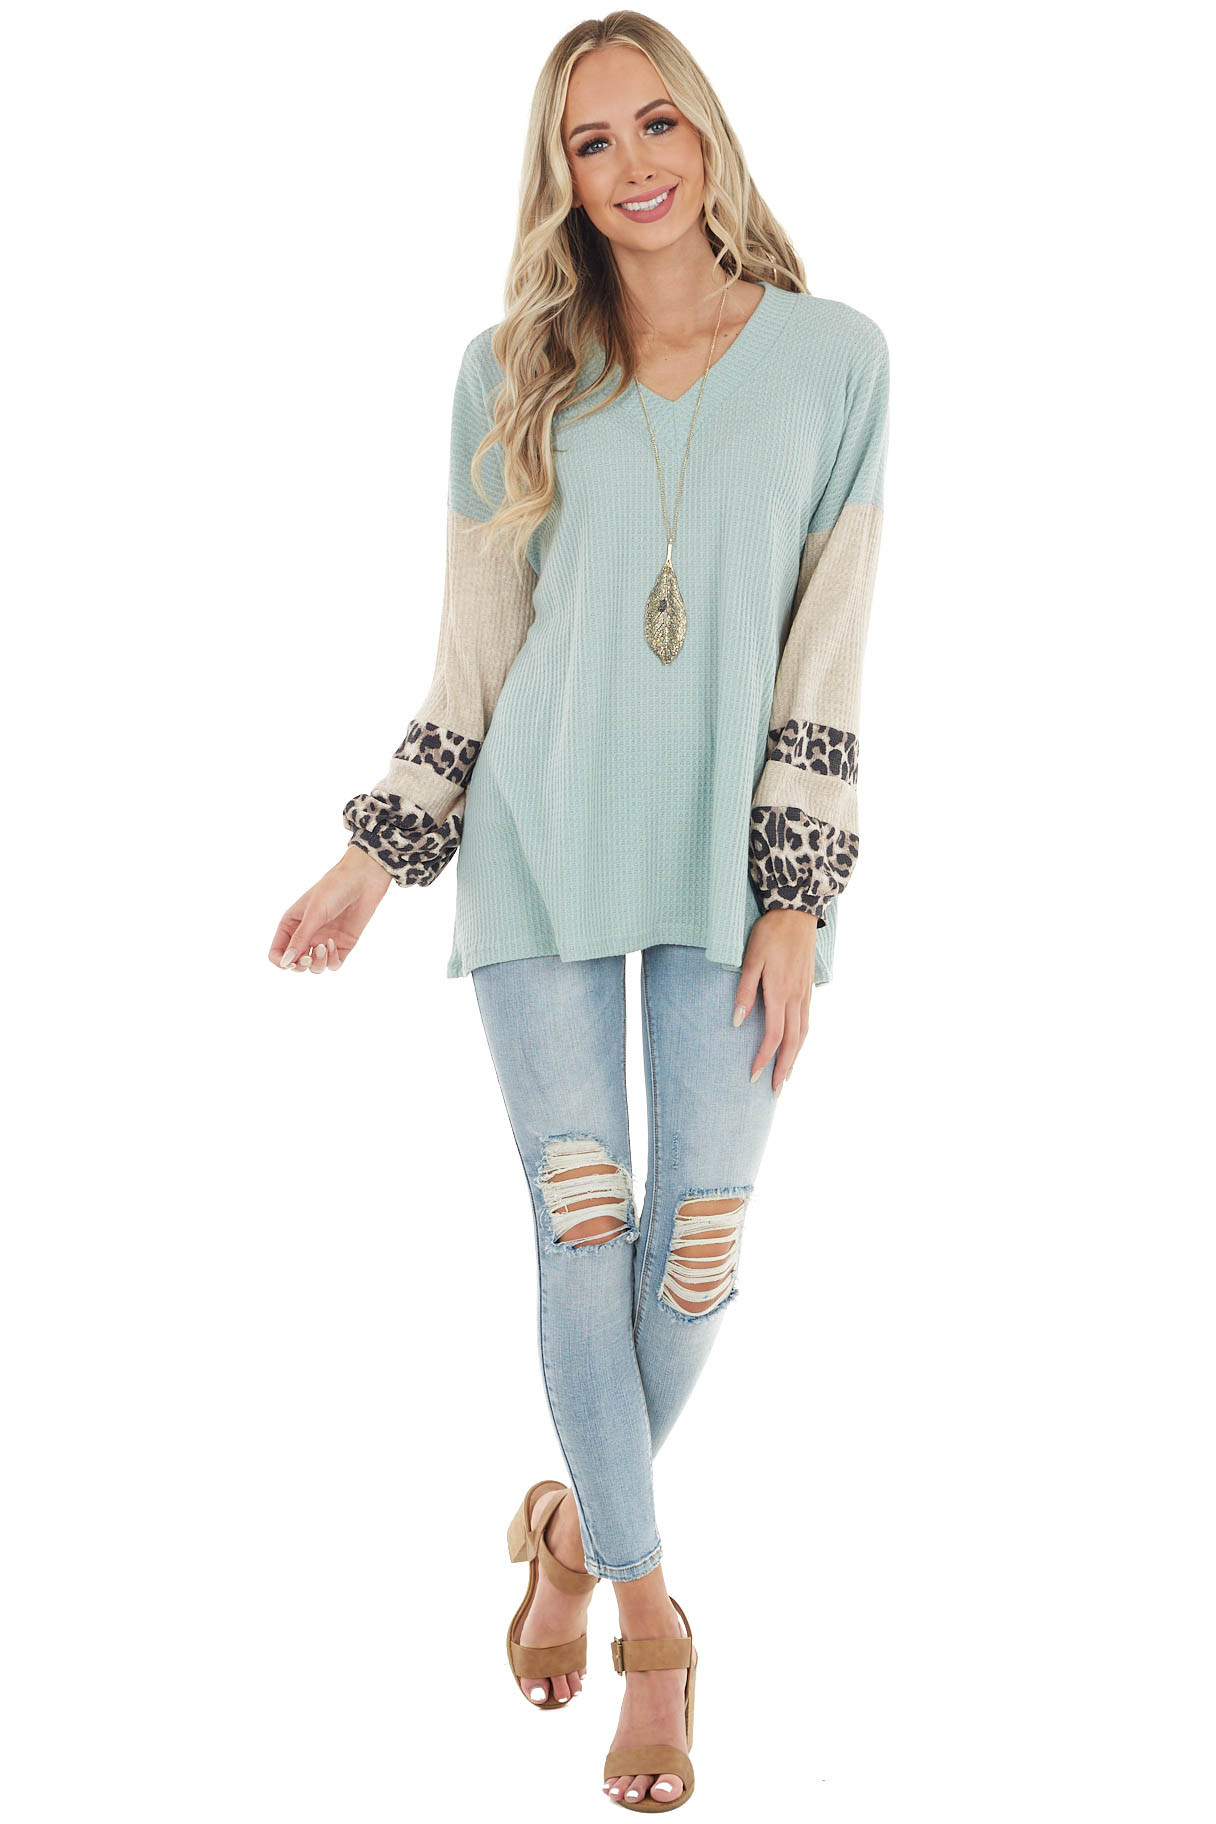 Sage Waffle Knit Top with Oatmeal and Leopard Print Sleeves